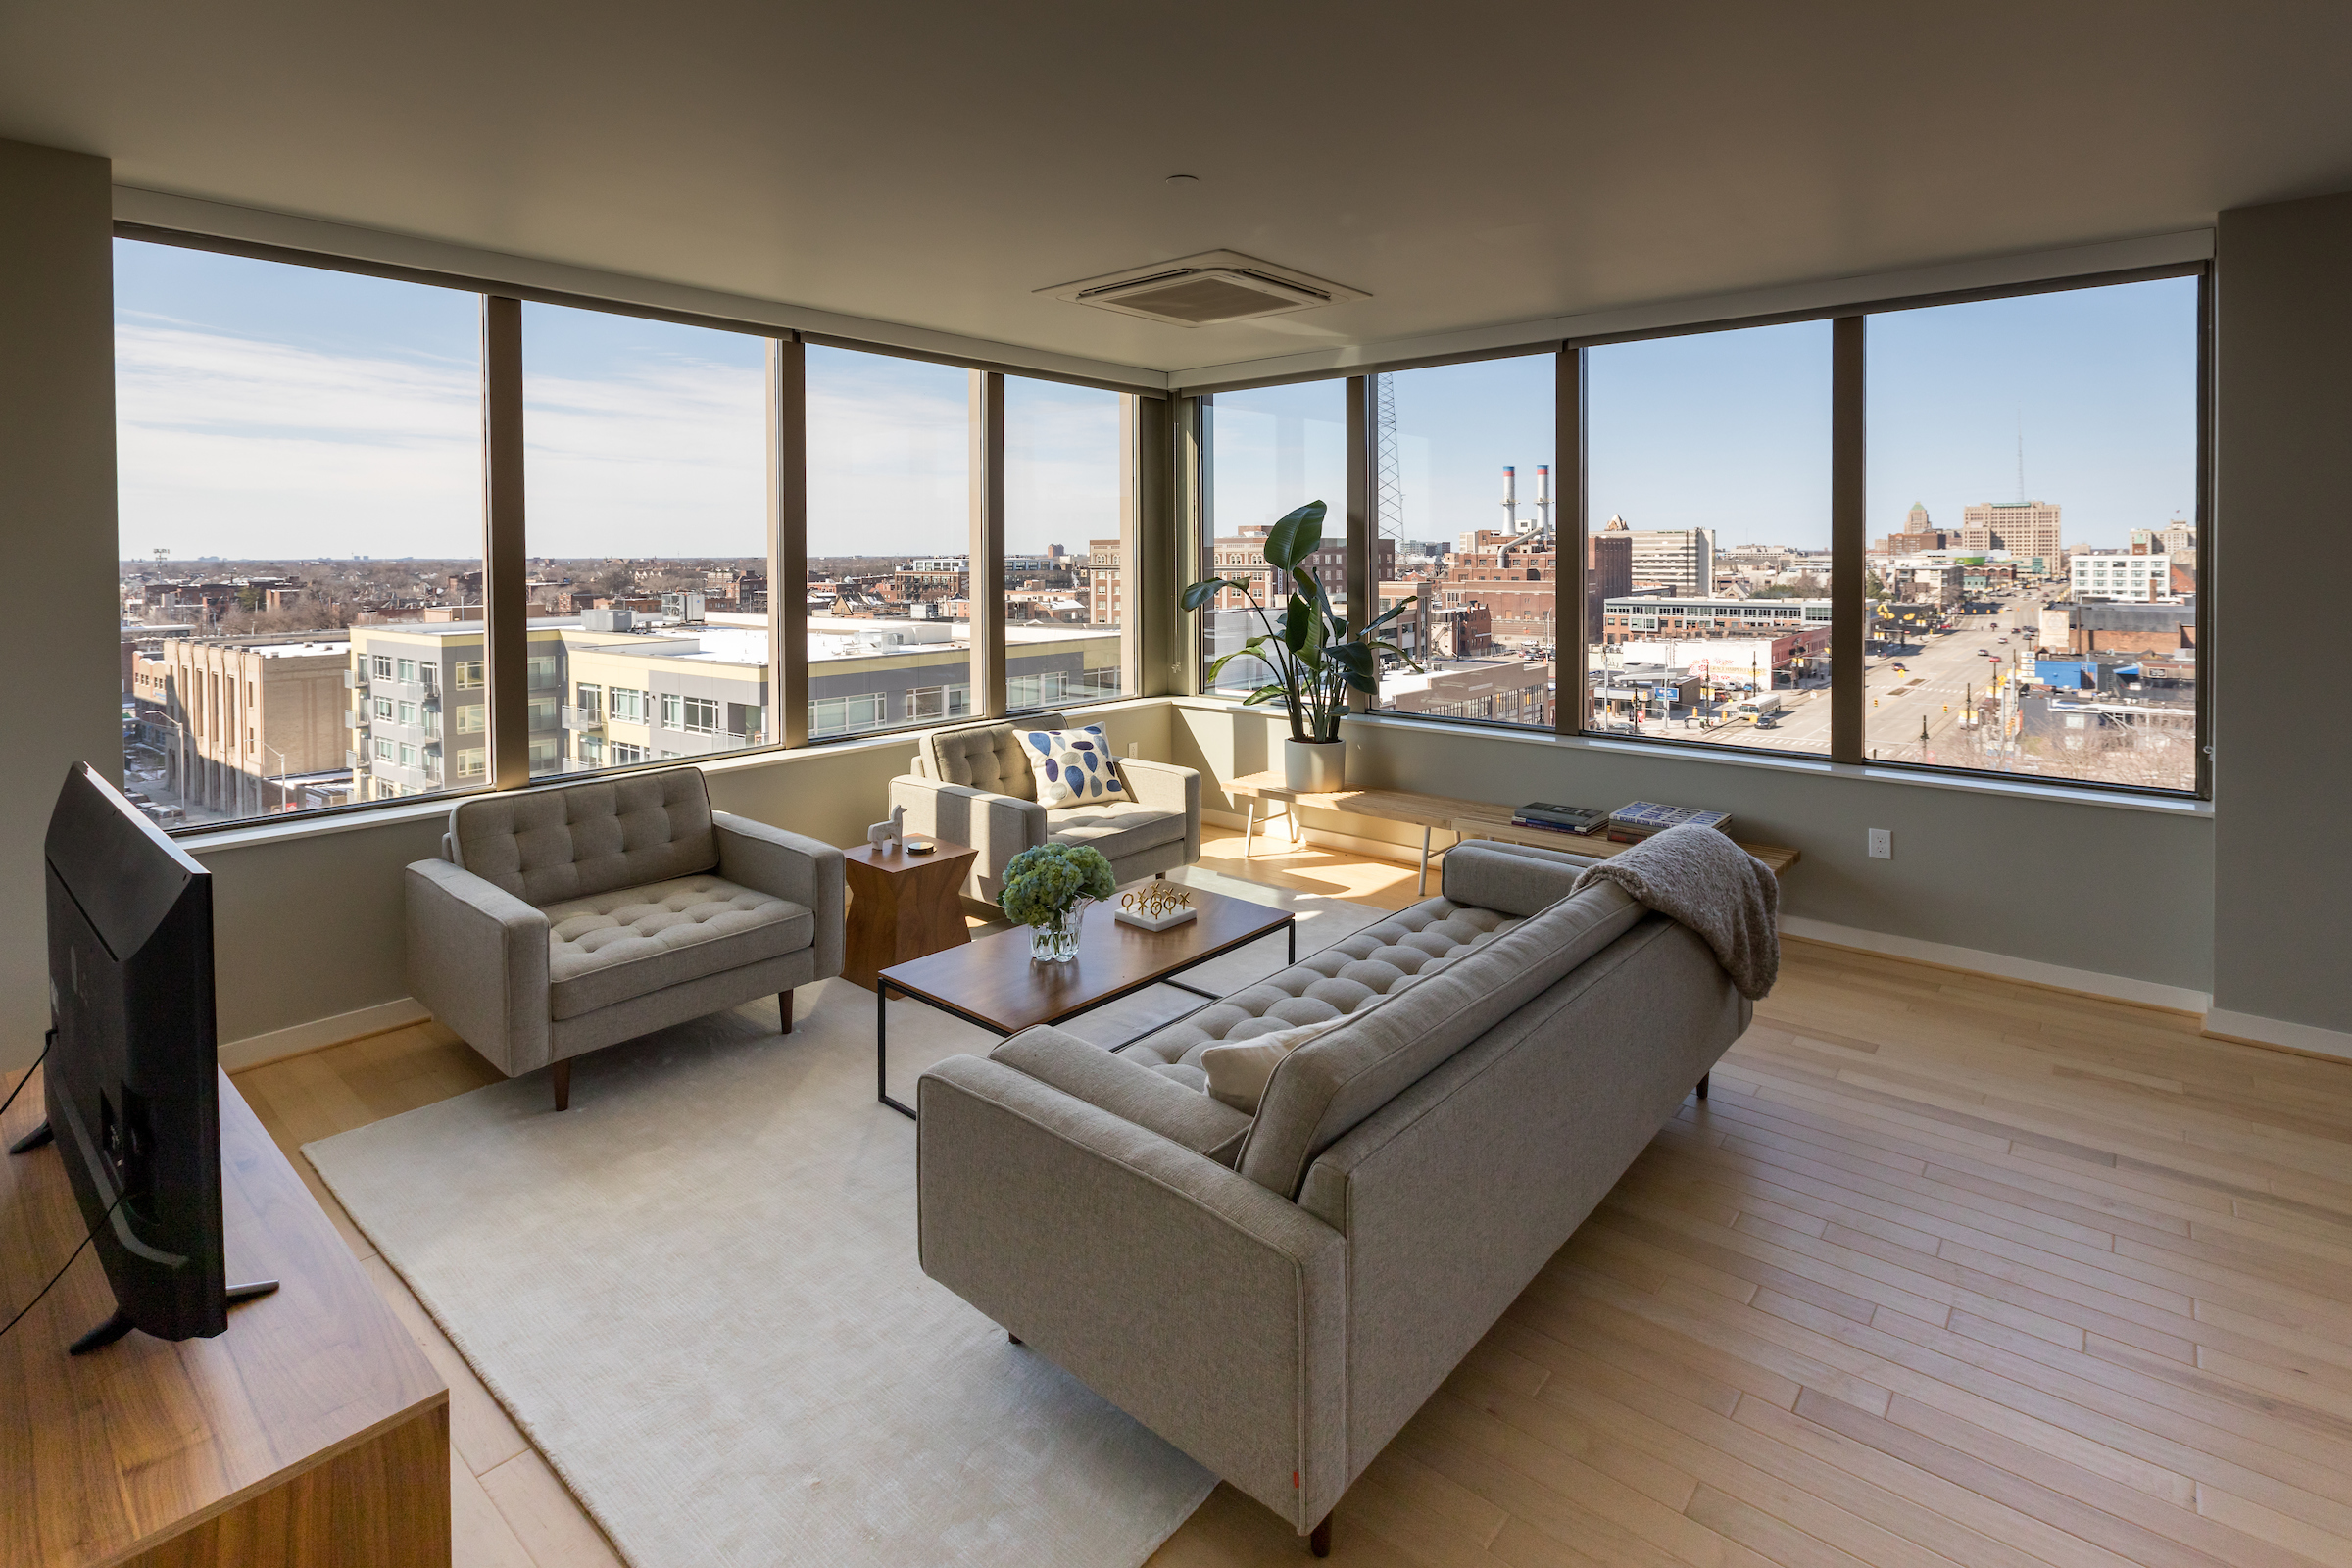 Inside a hi-rise apartment with views of the city out the large windows. A white couch faces two white chairs with a glass coffee table in between.